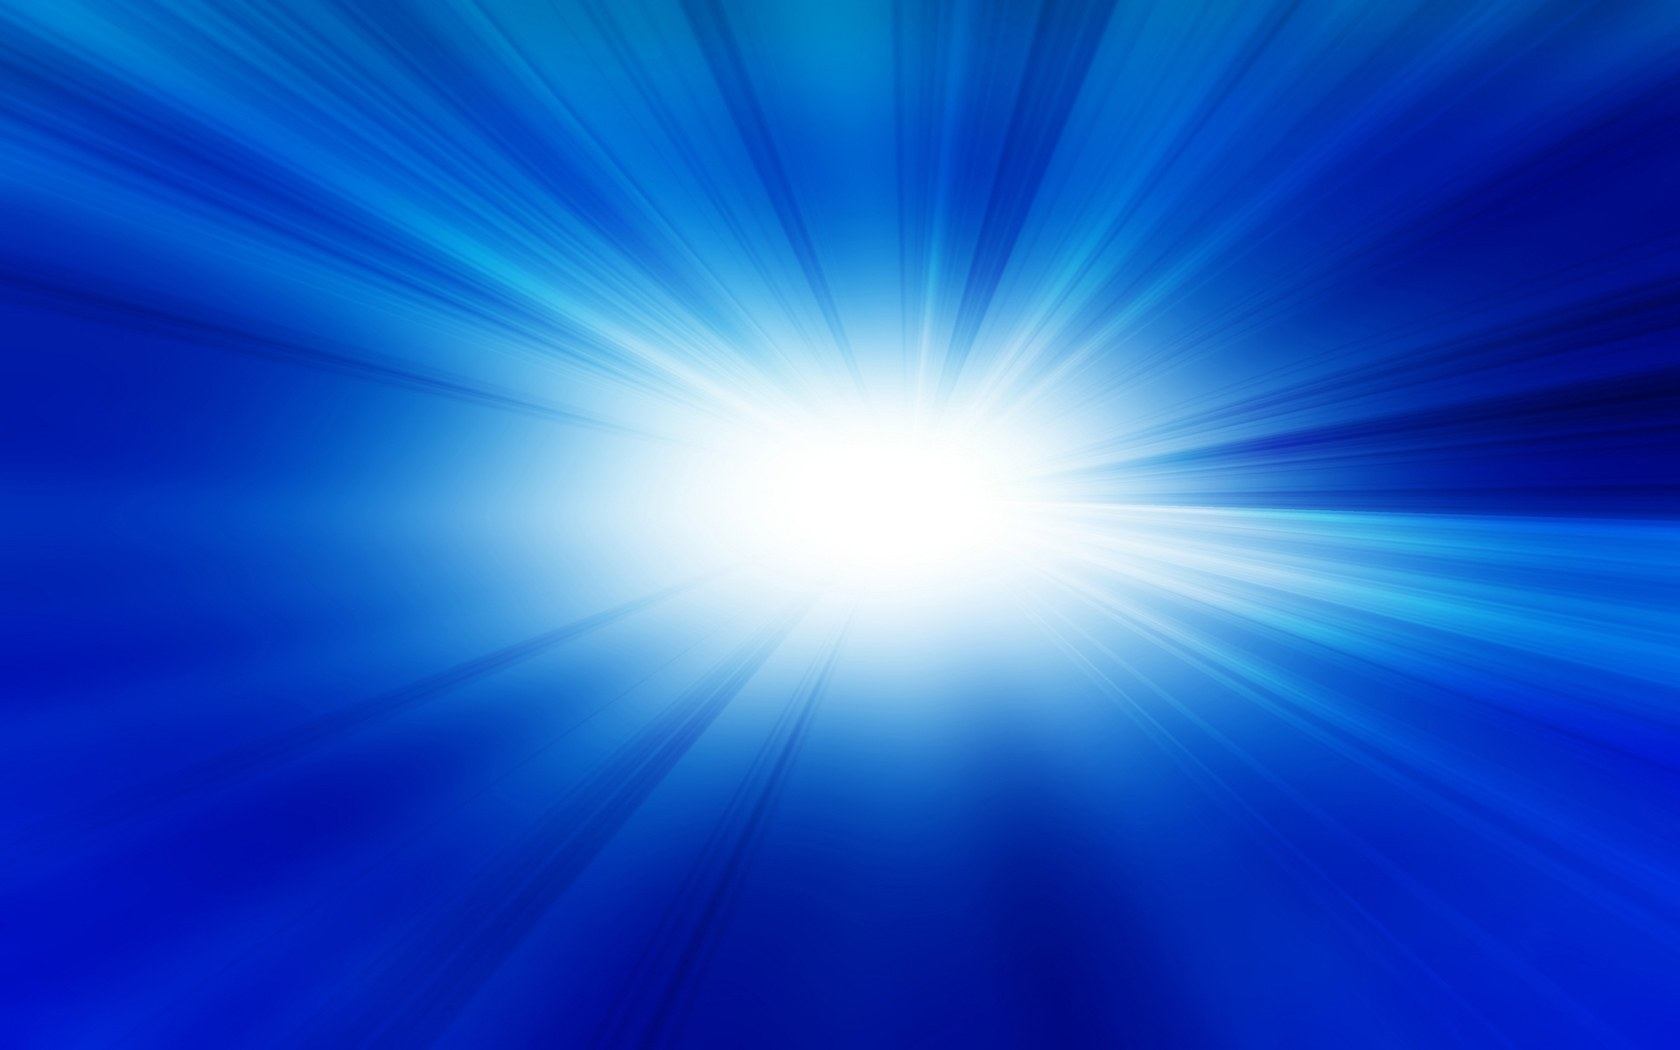 Abstract-Blue-backgrounds-39.jpg